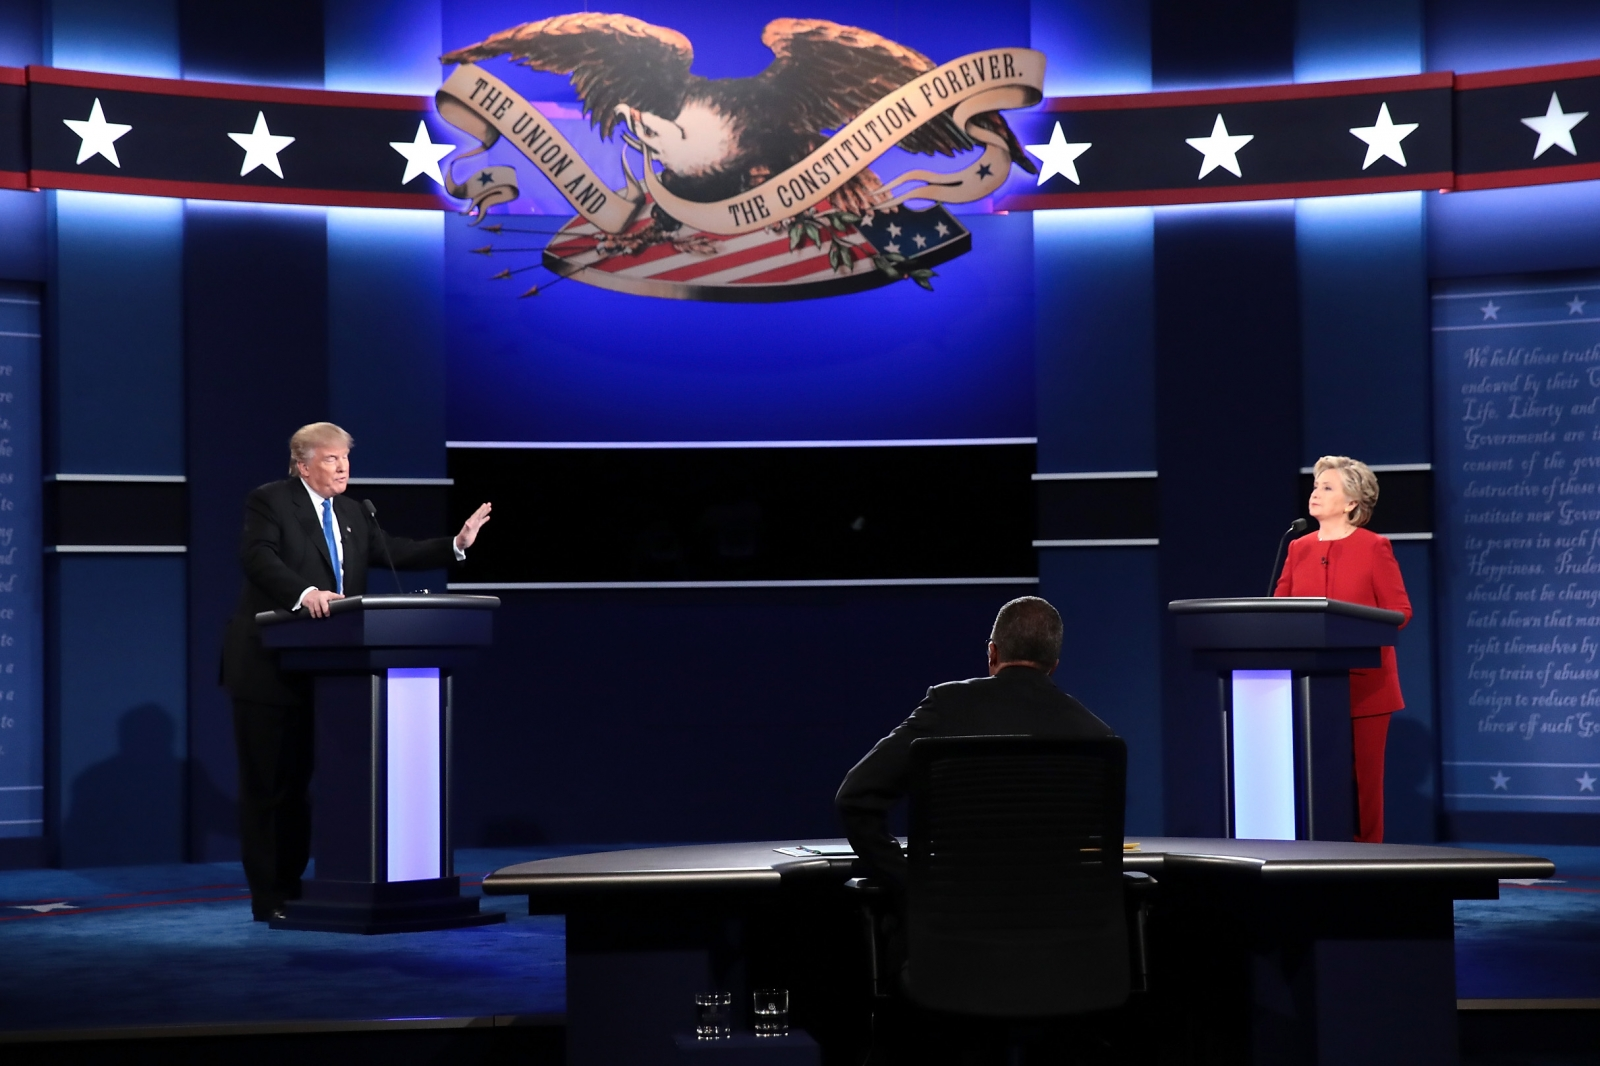 US presidential debate 2016: Journalists asked to pay $200 for WiFi at ...